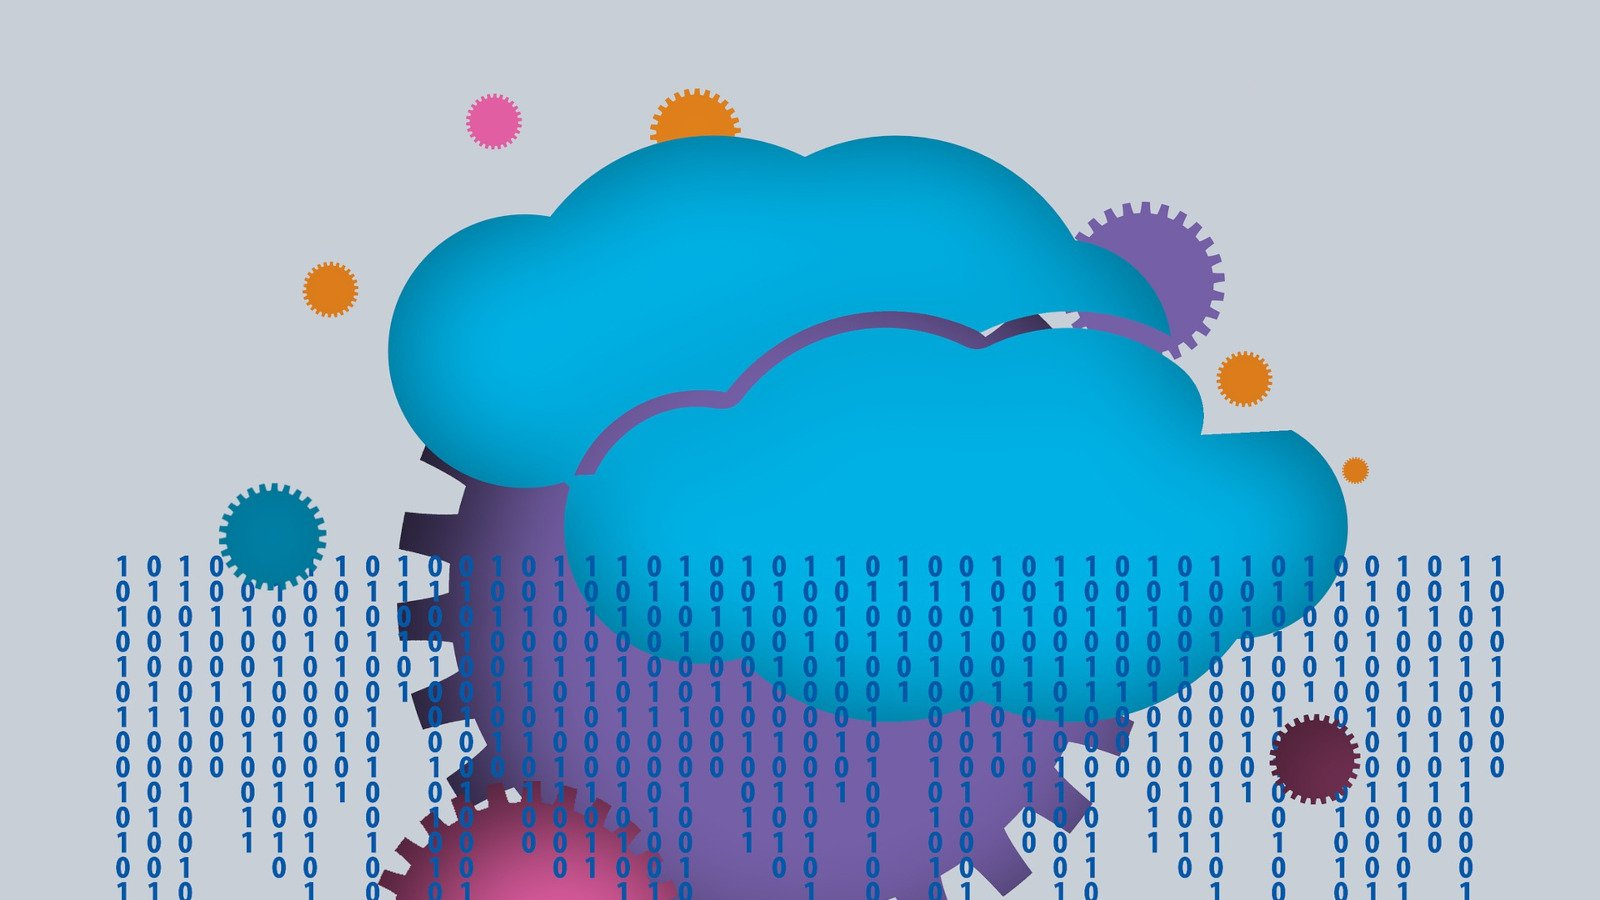 Cloud misconfigurations expose data of over 100 million Android users